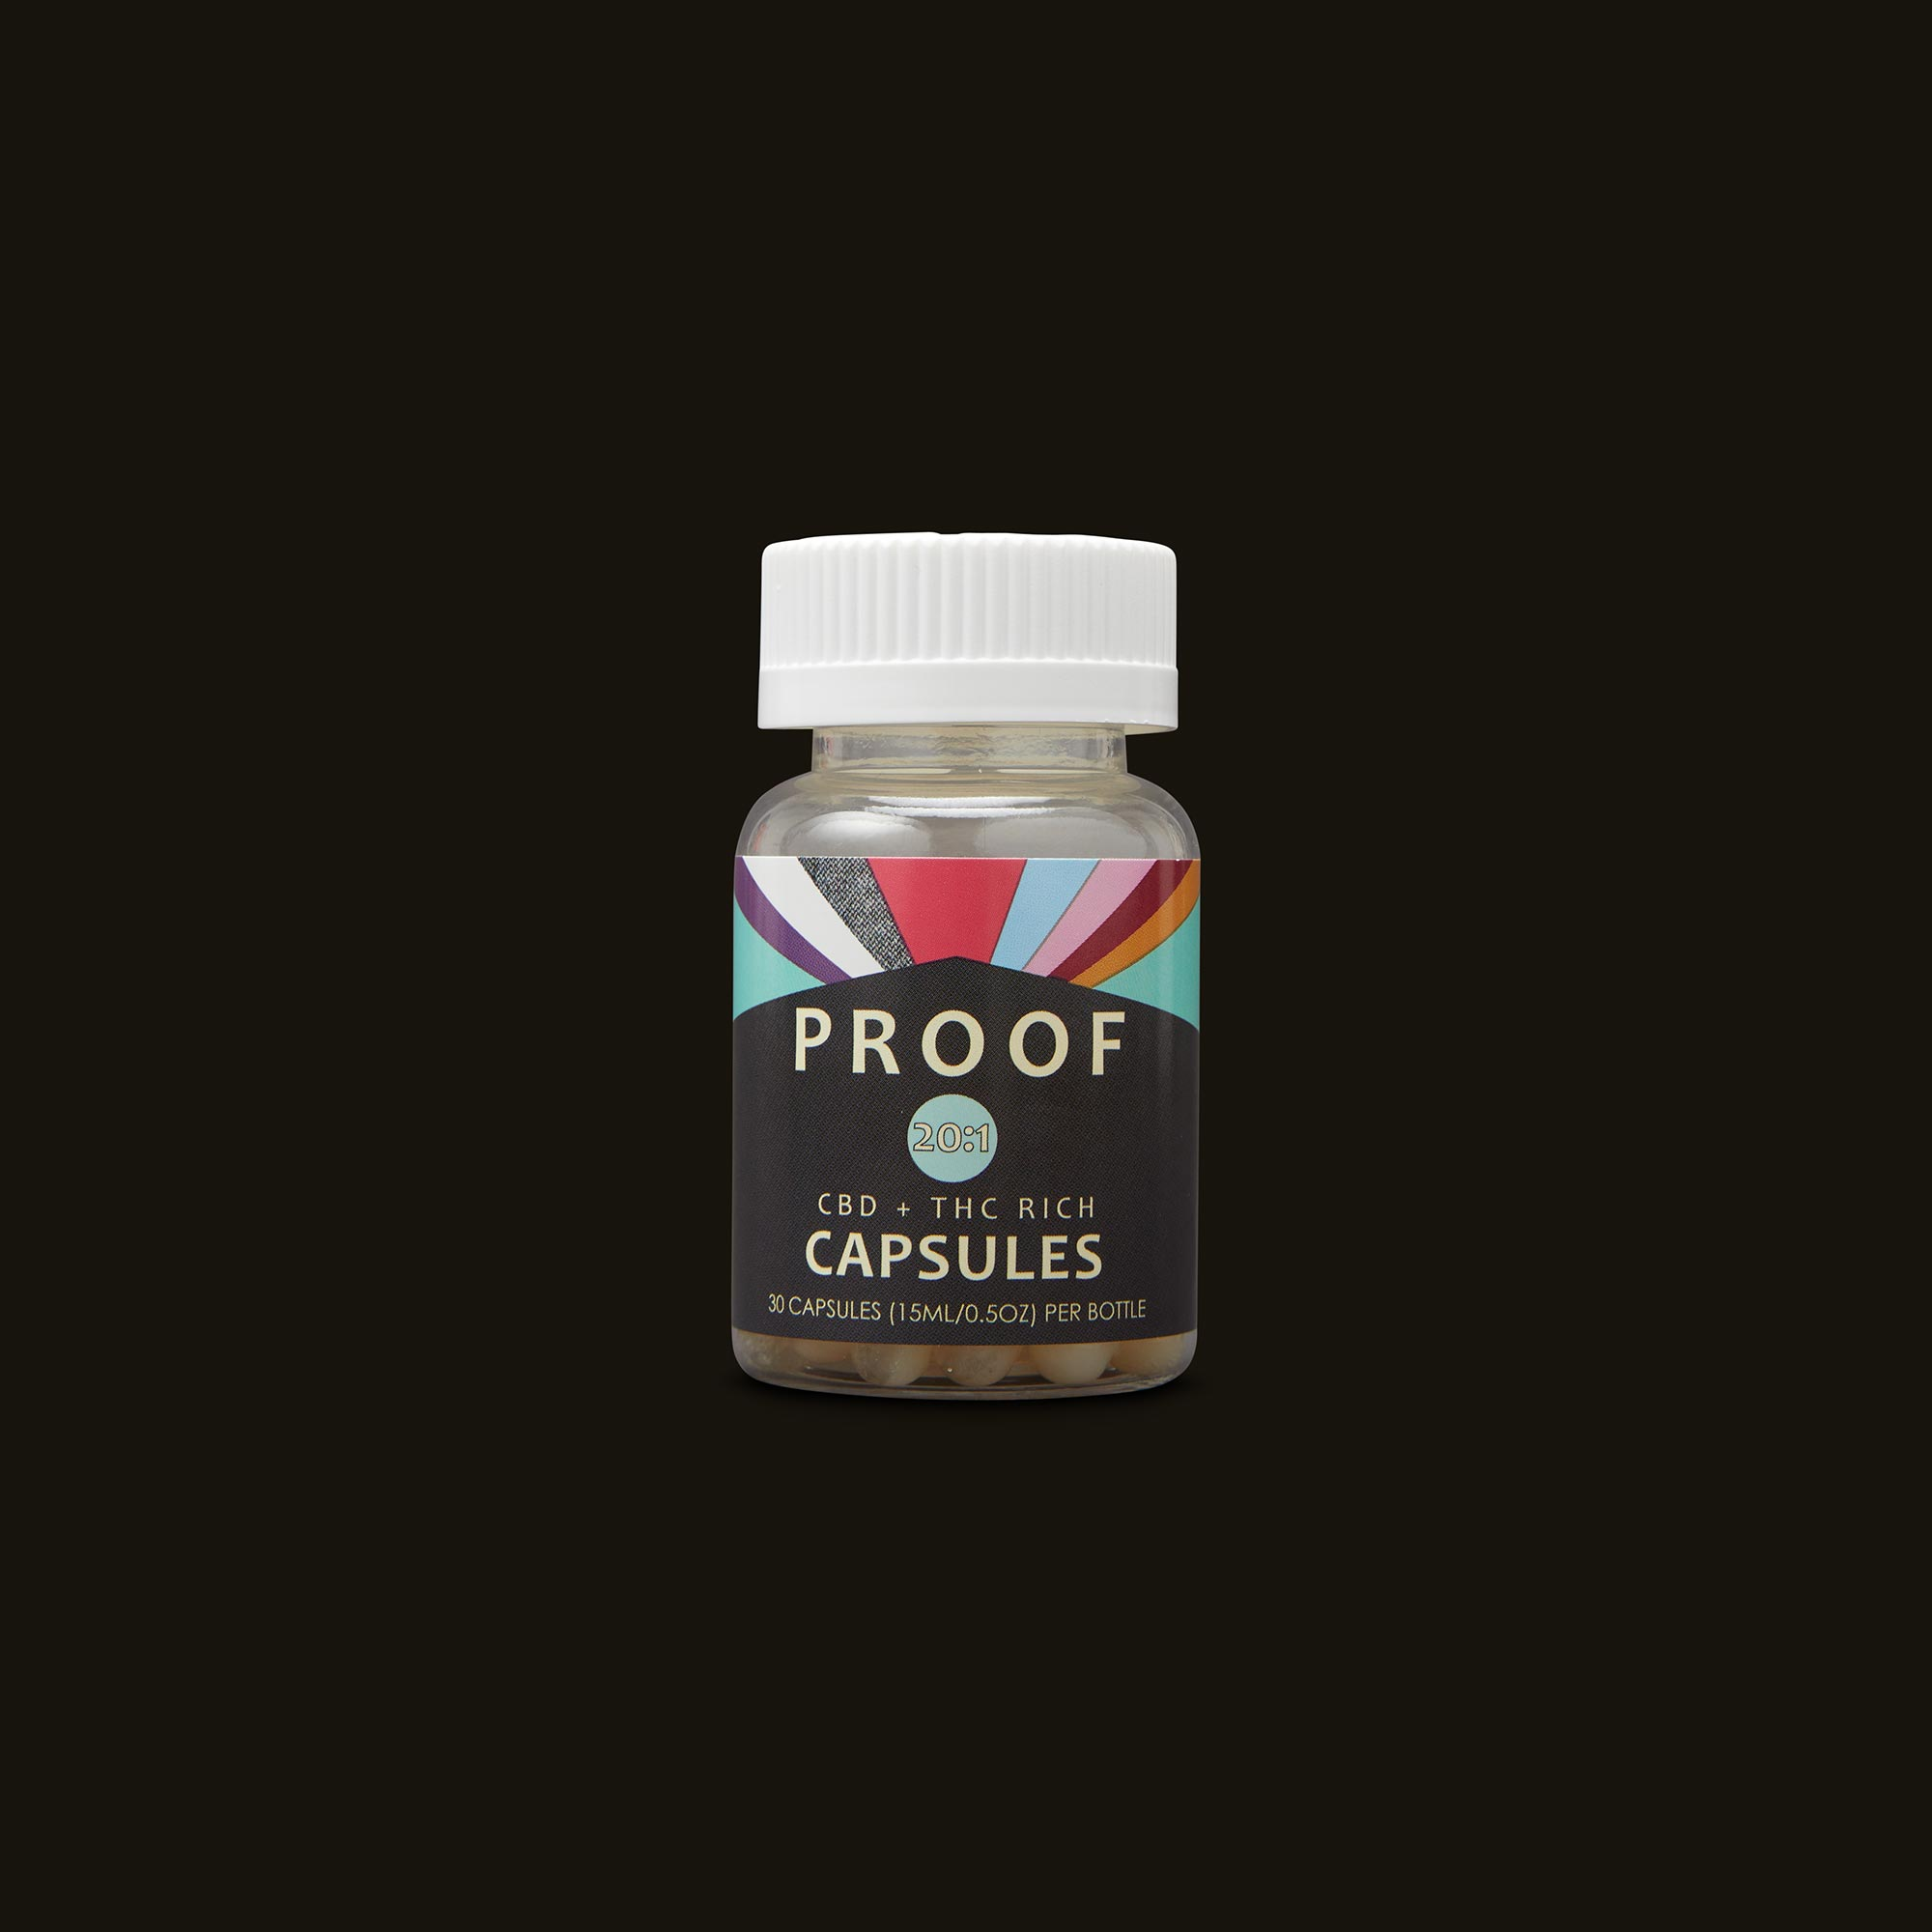 Proof 20:1 CBD:THC Capsules Bottle